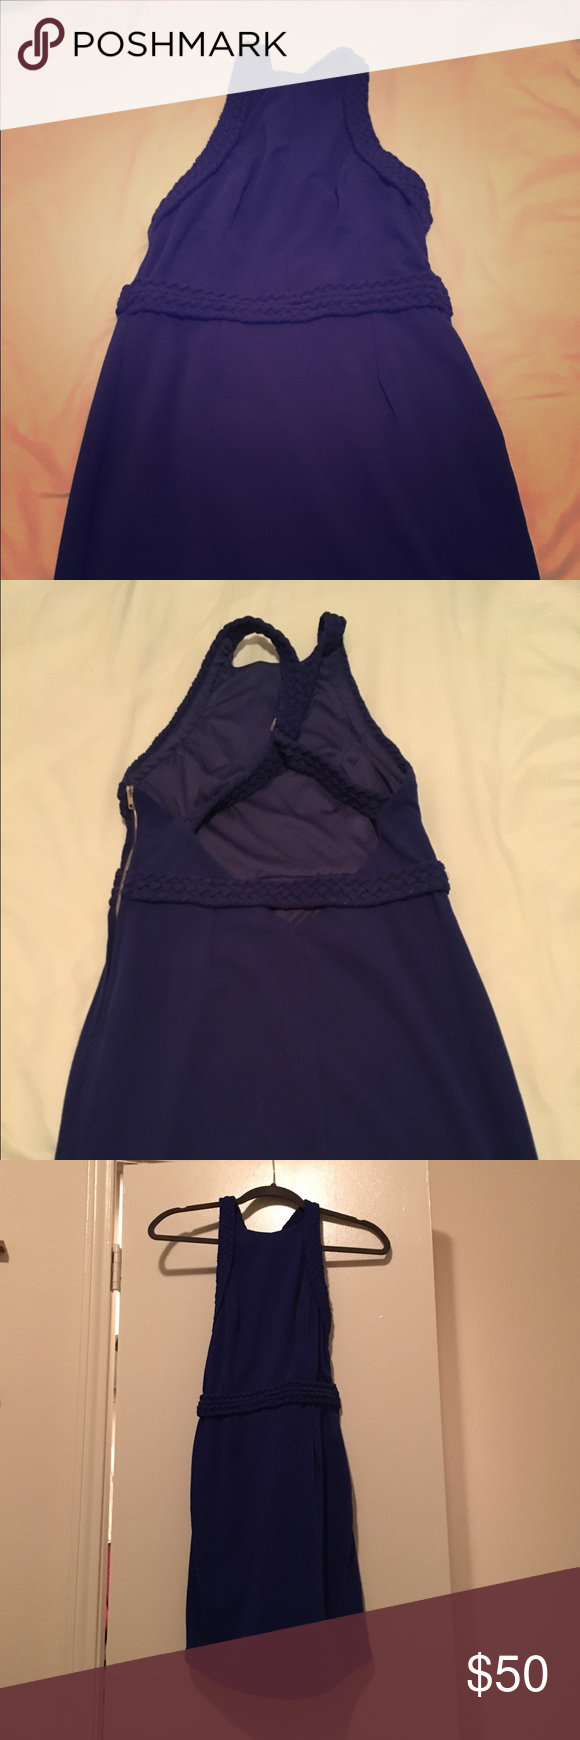 Royal blue dress I got this dress for a party but found another I liked better. It is a size 12 but from the Australian boutique Hello Molly so it fits differently then a US size 12- more like an 8. It's royal blue- stretchy material but it does have a side zipper! NEVER WORN! Dresses Mini